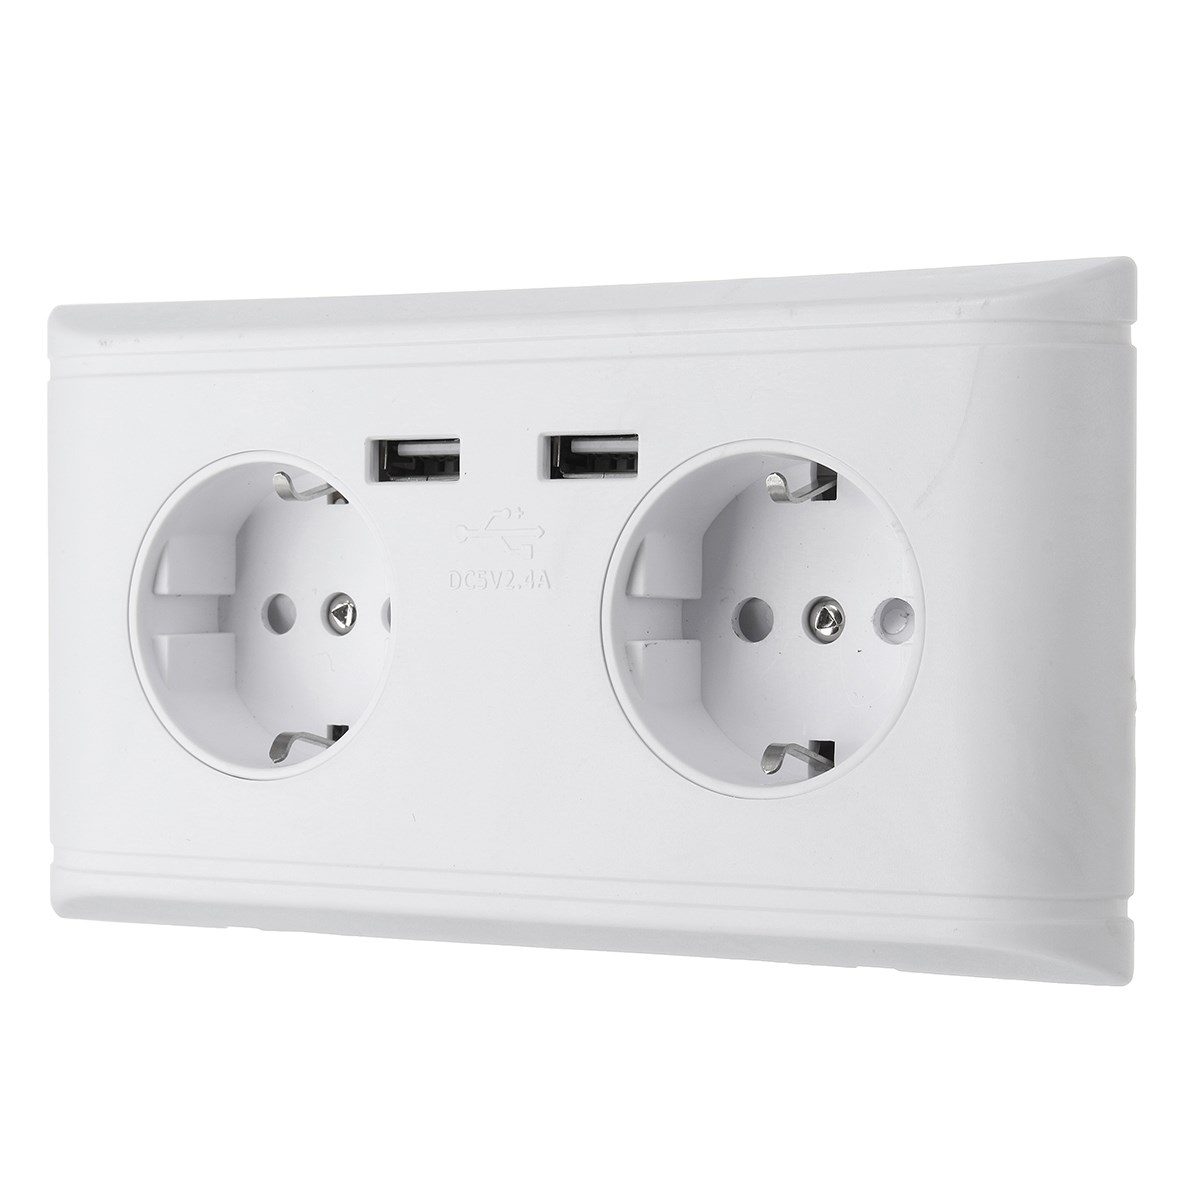 NEW Safurance 2.4A Dual USB Port Wall 2 Socket Charger AC Power Receptacle Outlet Plate Panel For Home Automation цена 2016